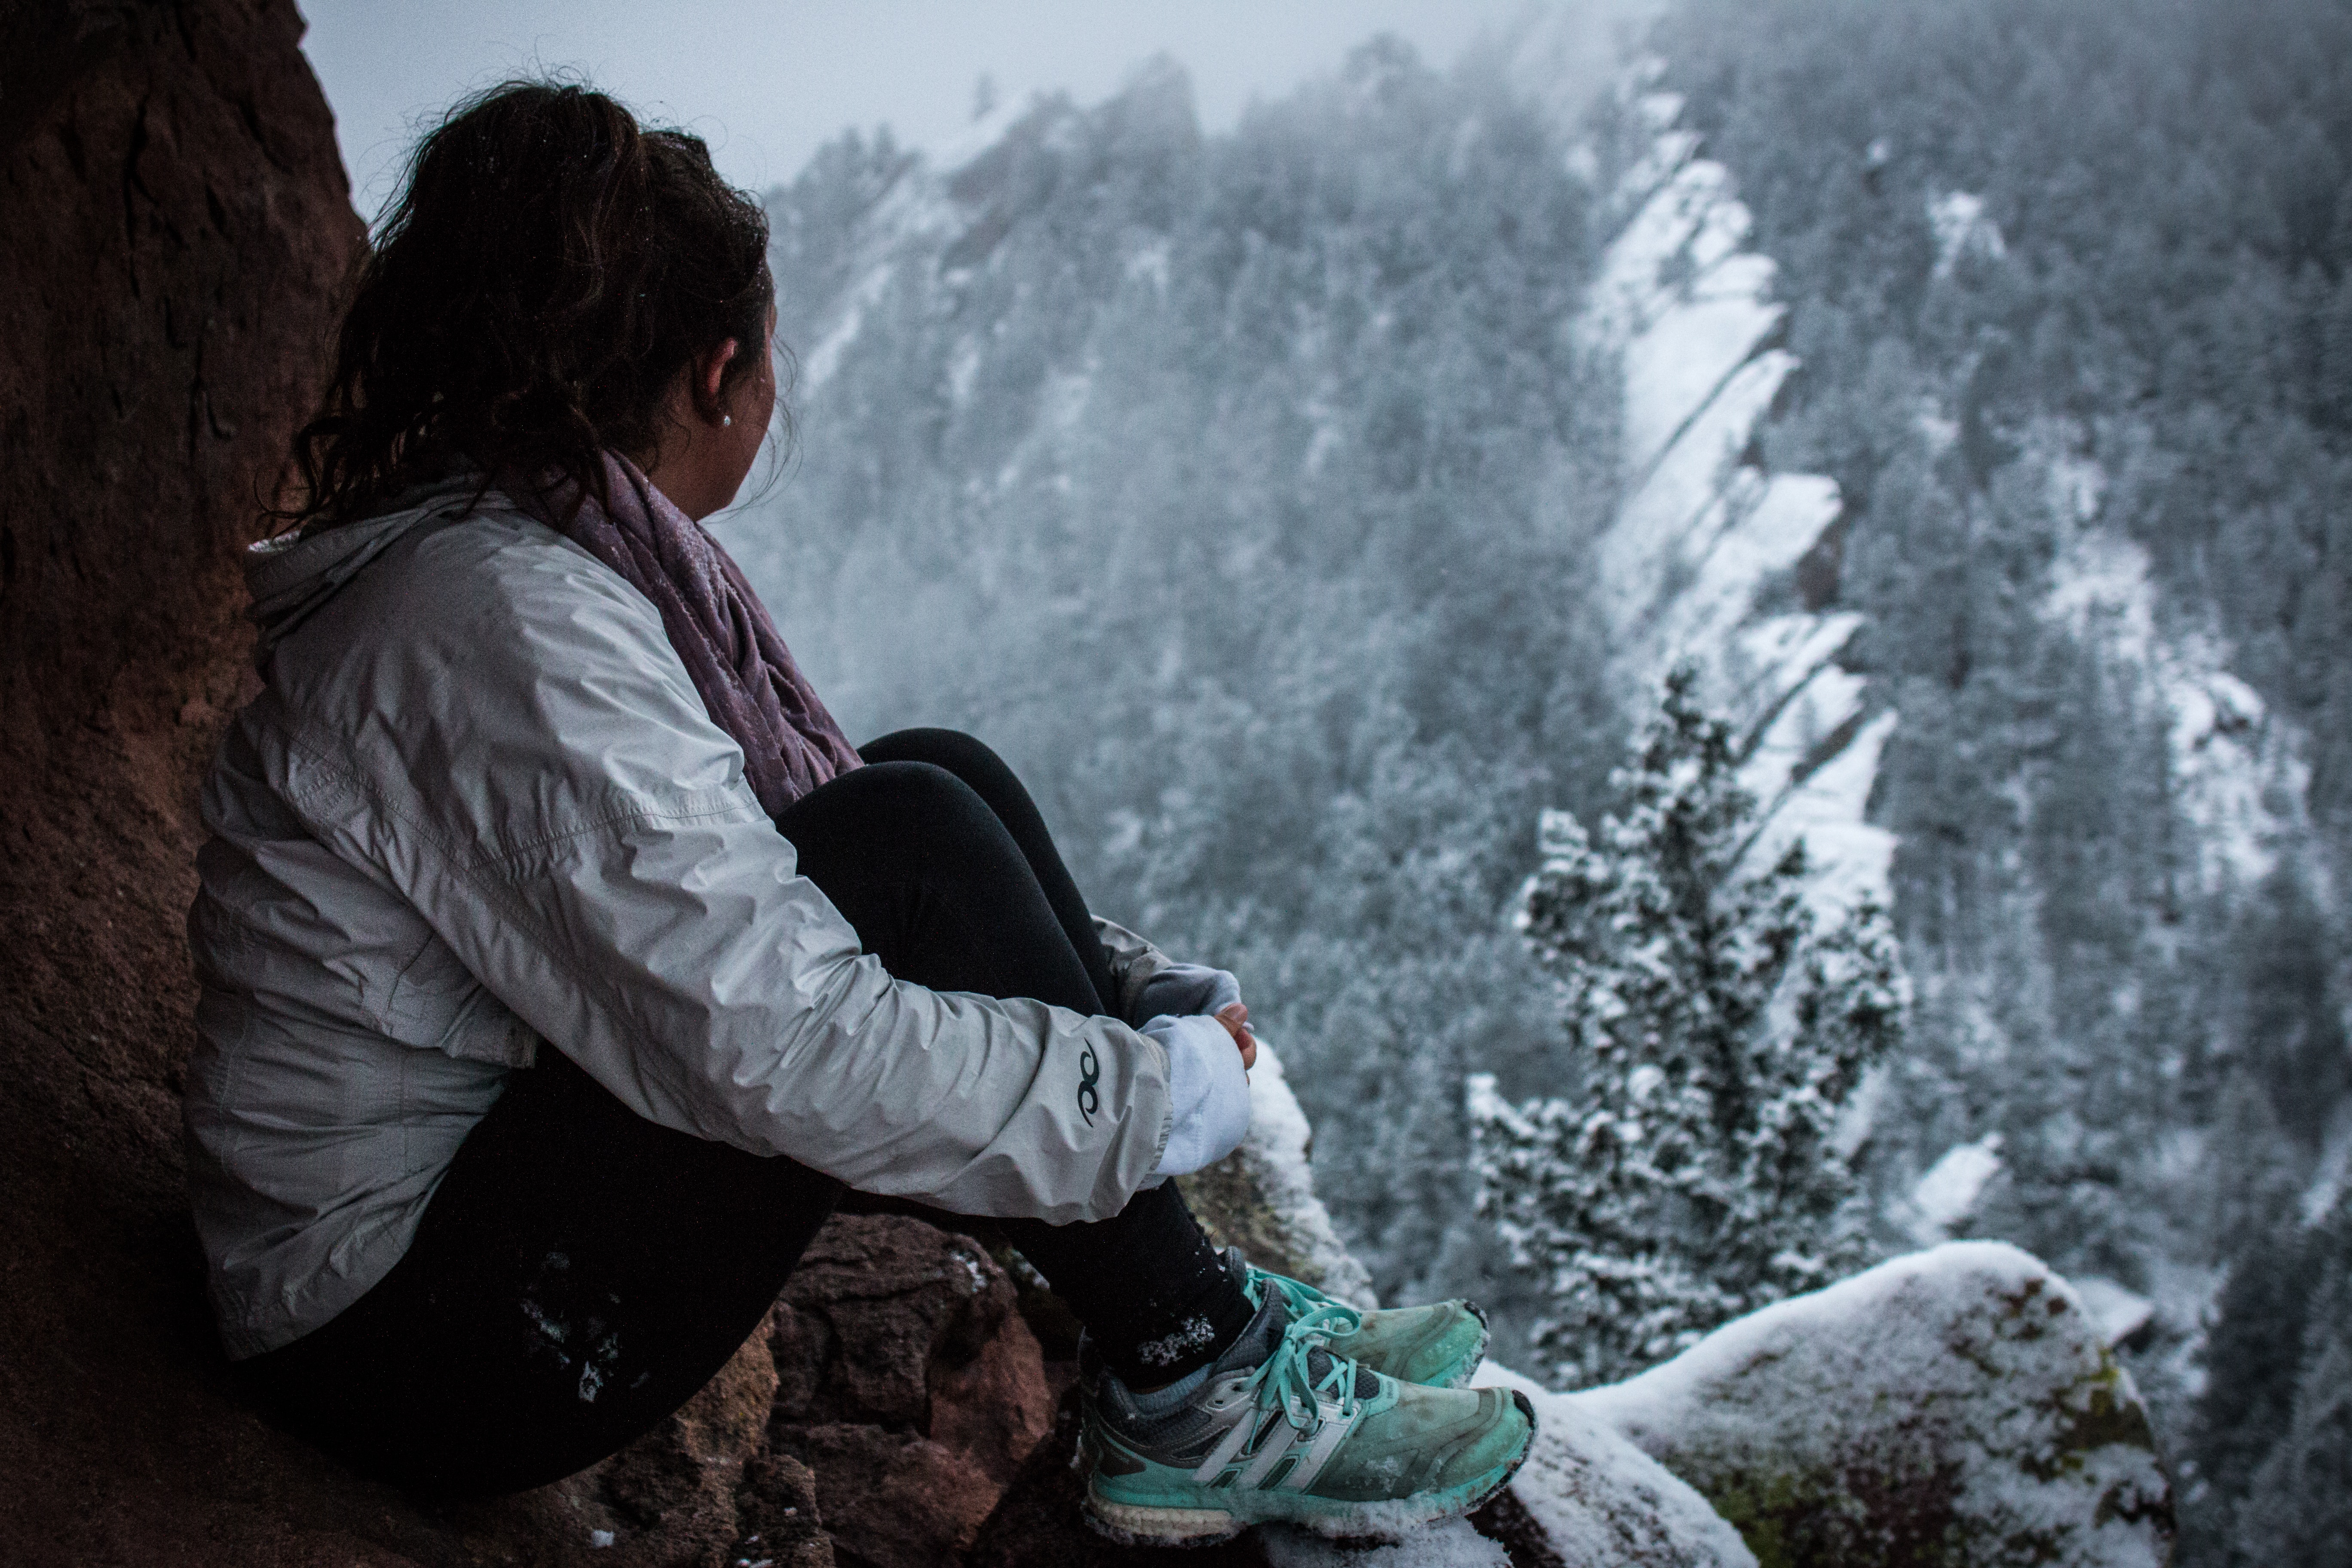 Young woman with dark hair wearing a winter coat and sneakers, looking out over a winter landscape